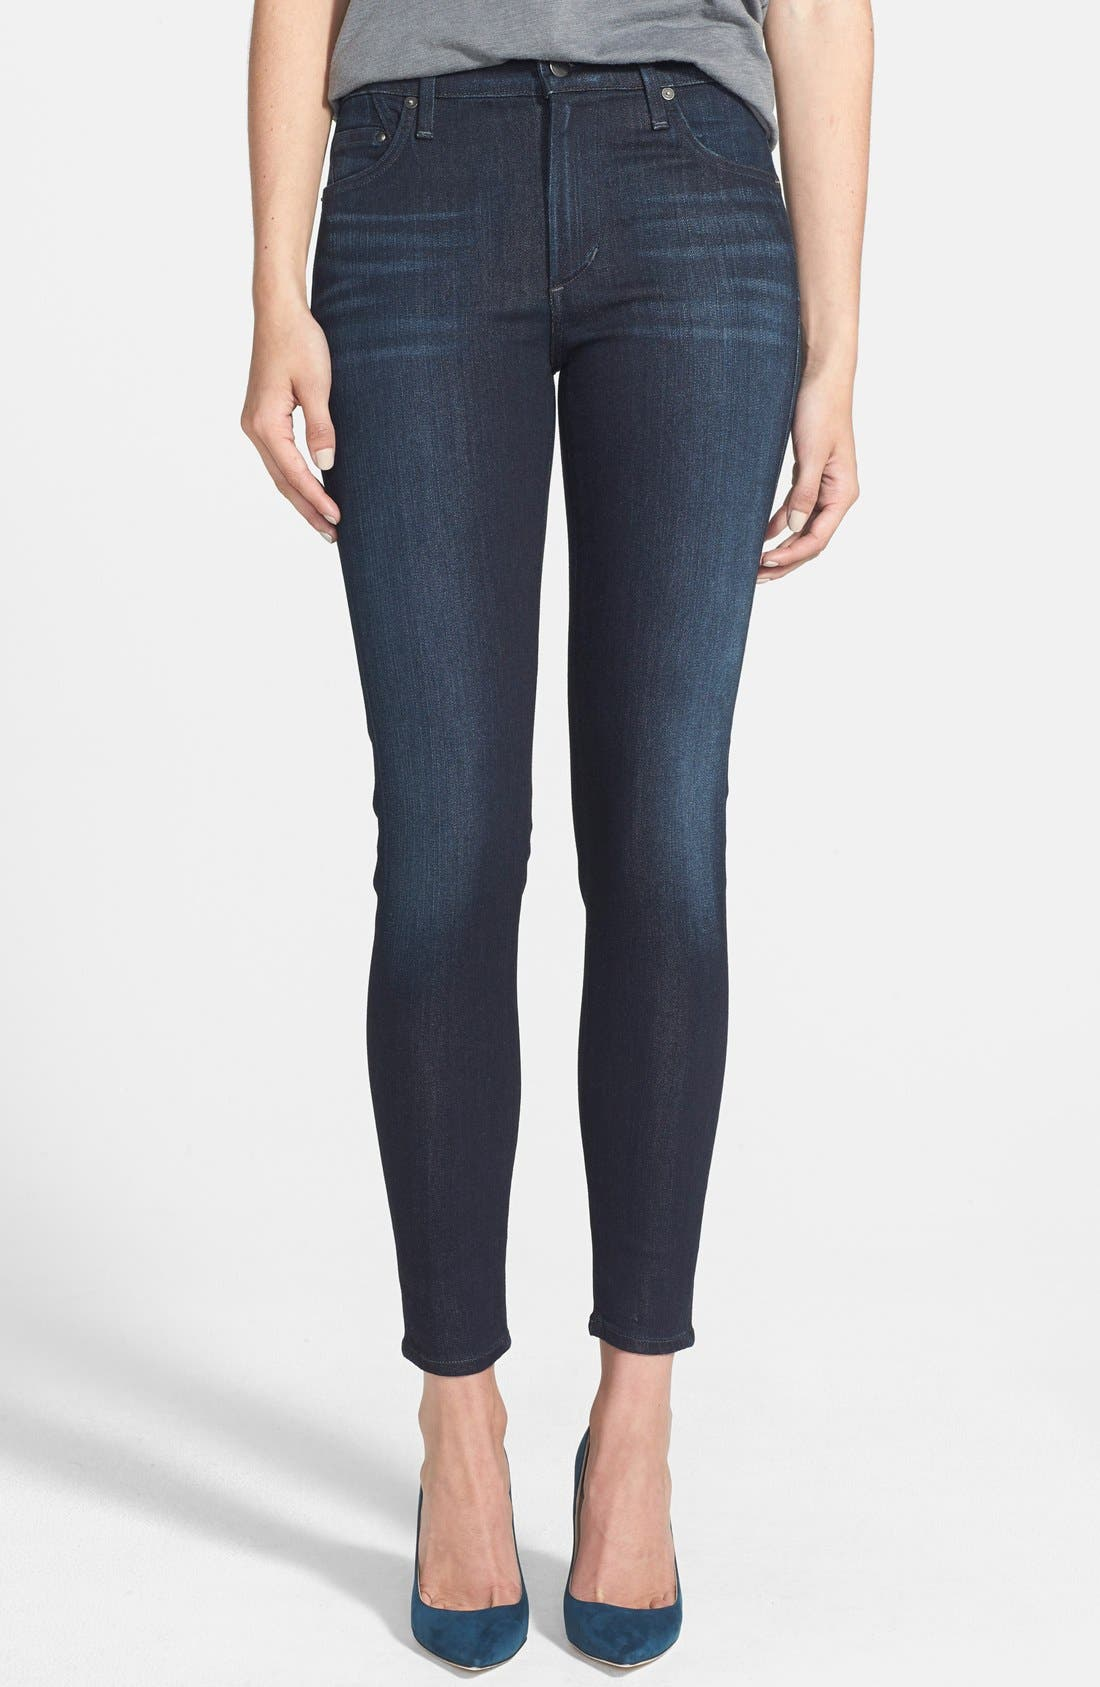 Main Image - Citizens of Humanity 'Rocket' High Rise Skinny Jeans (Space) (Petite)